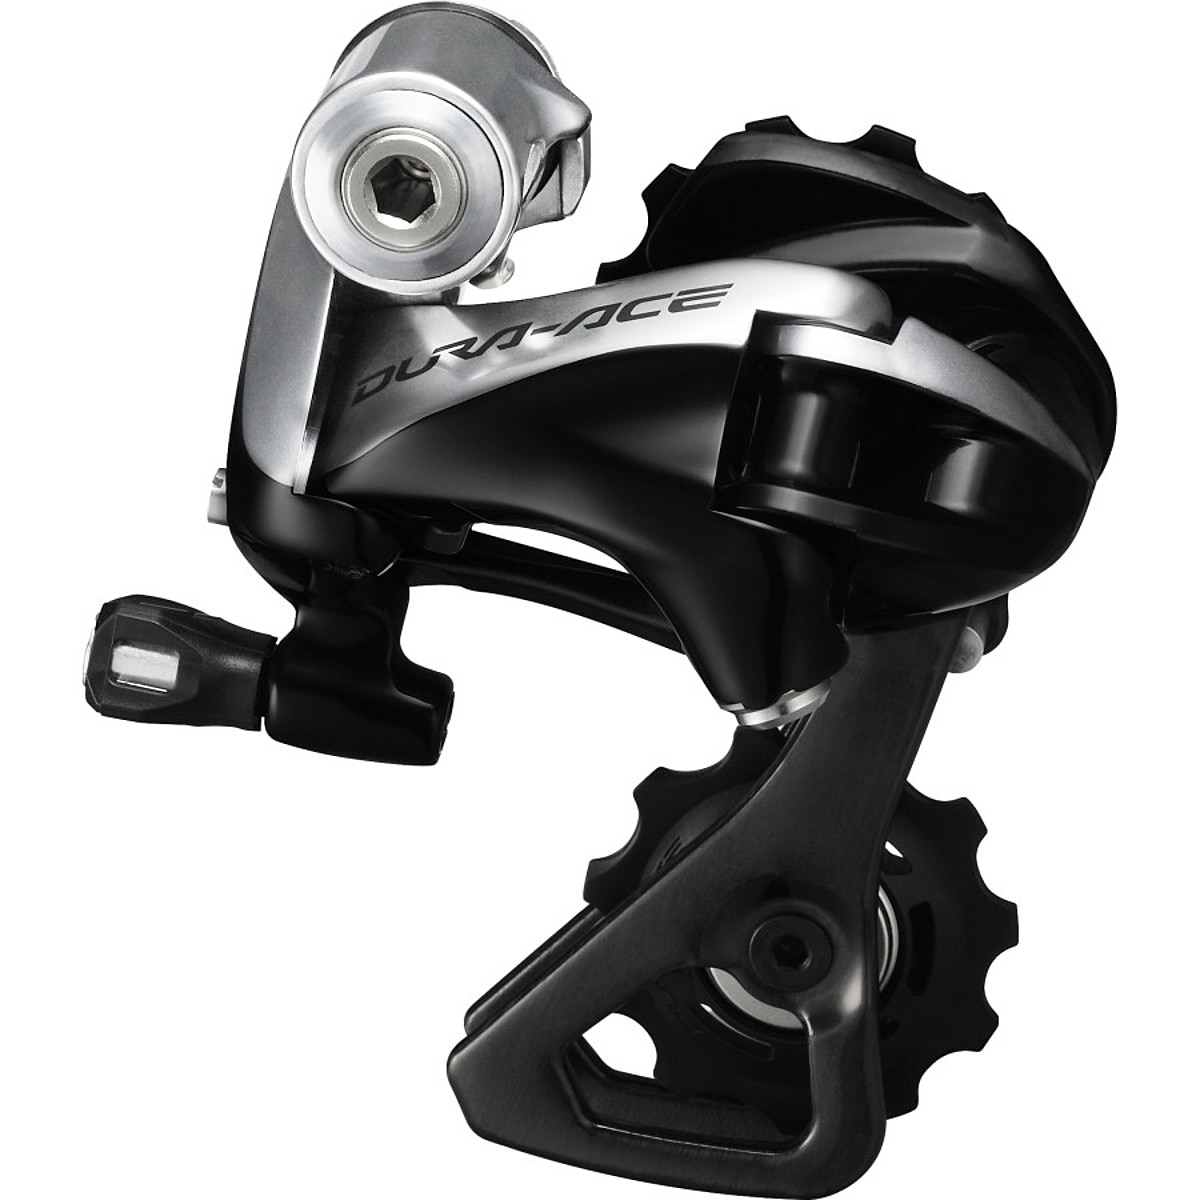 Shimano Dura-Ace RD-9000 11-Speed Rear Derailleur | Competitive Cyclist